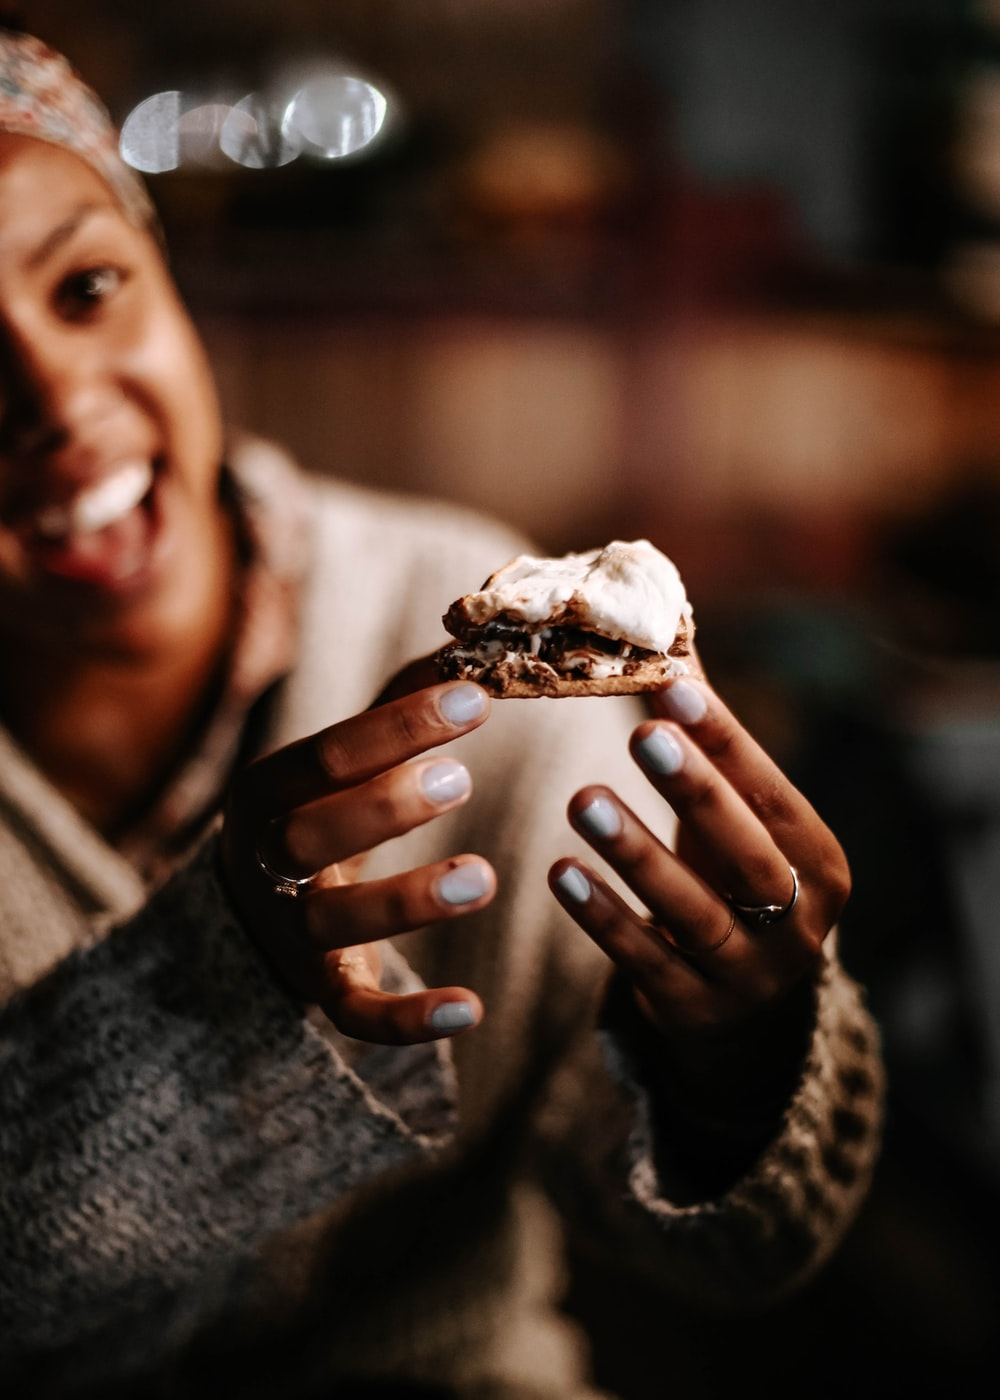 person holding brown and white ice cream